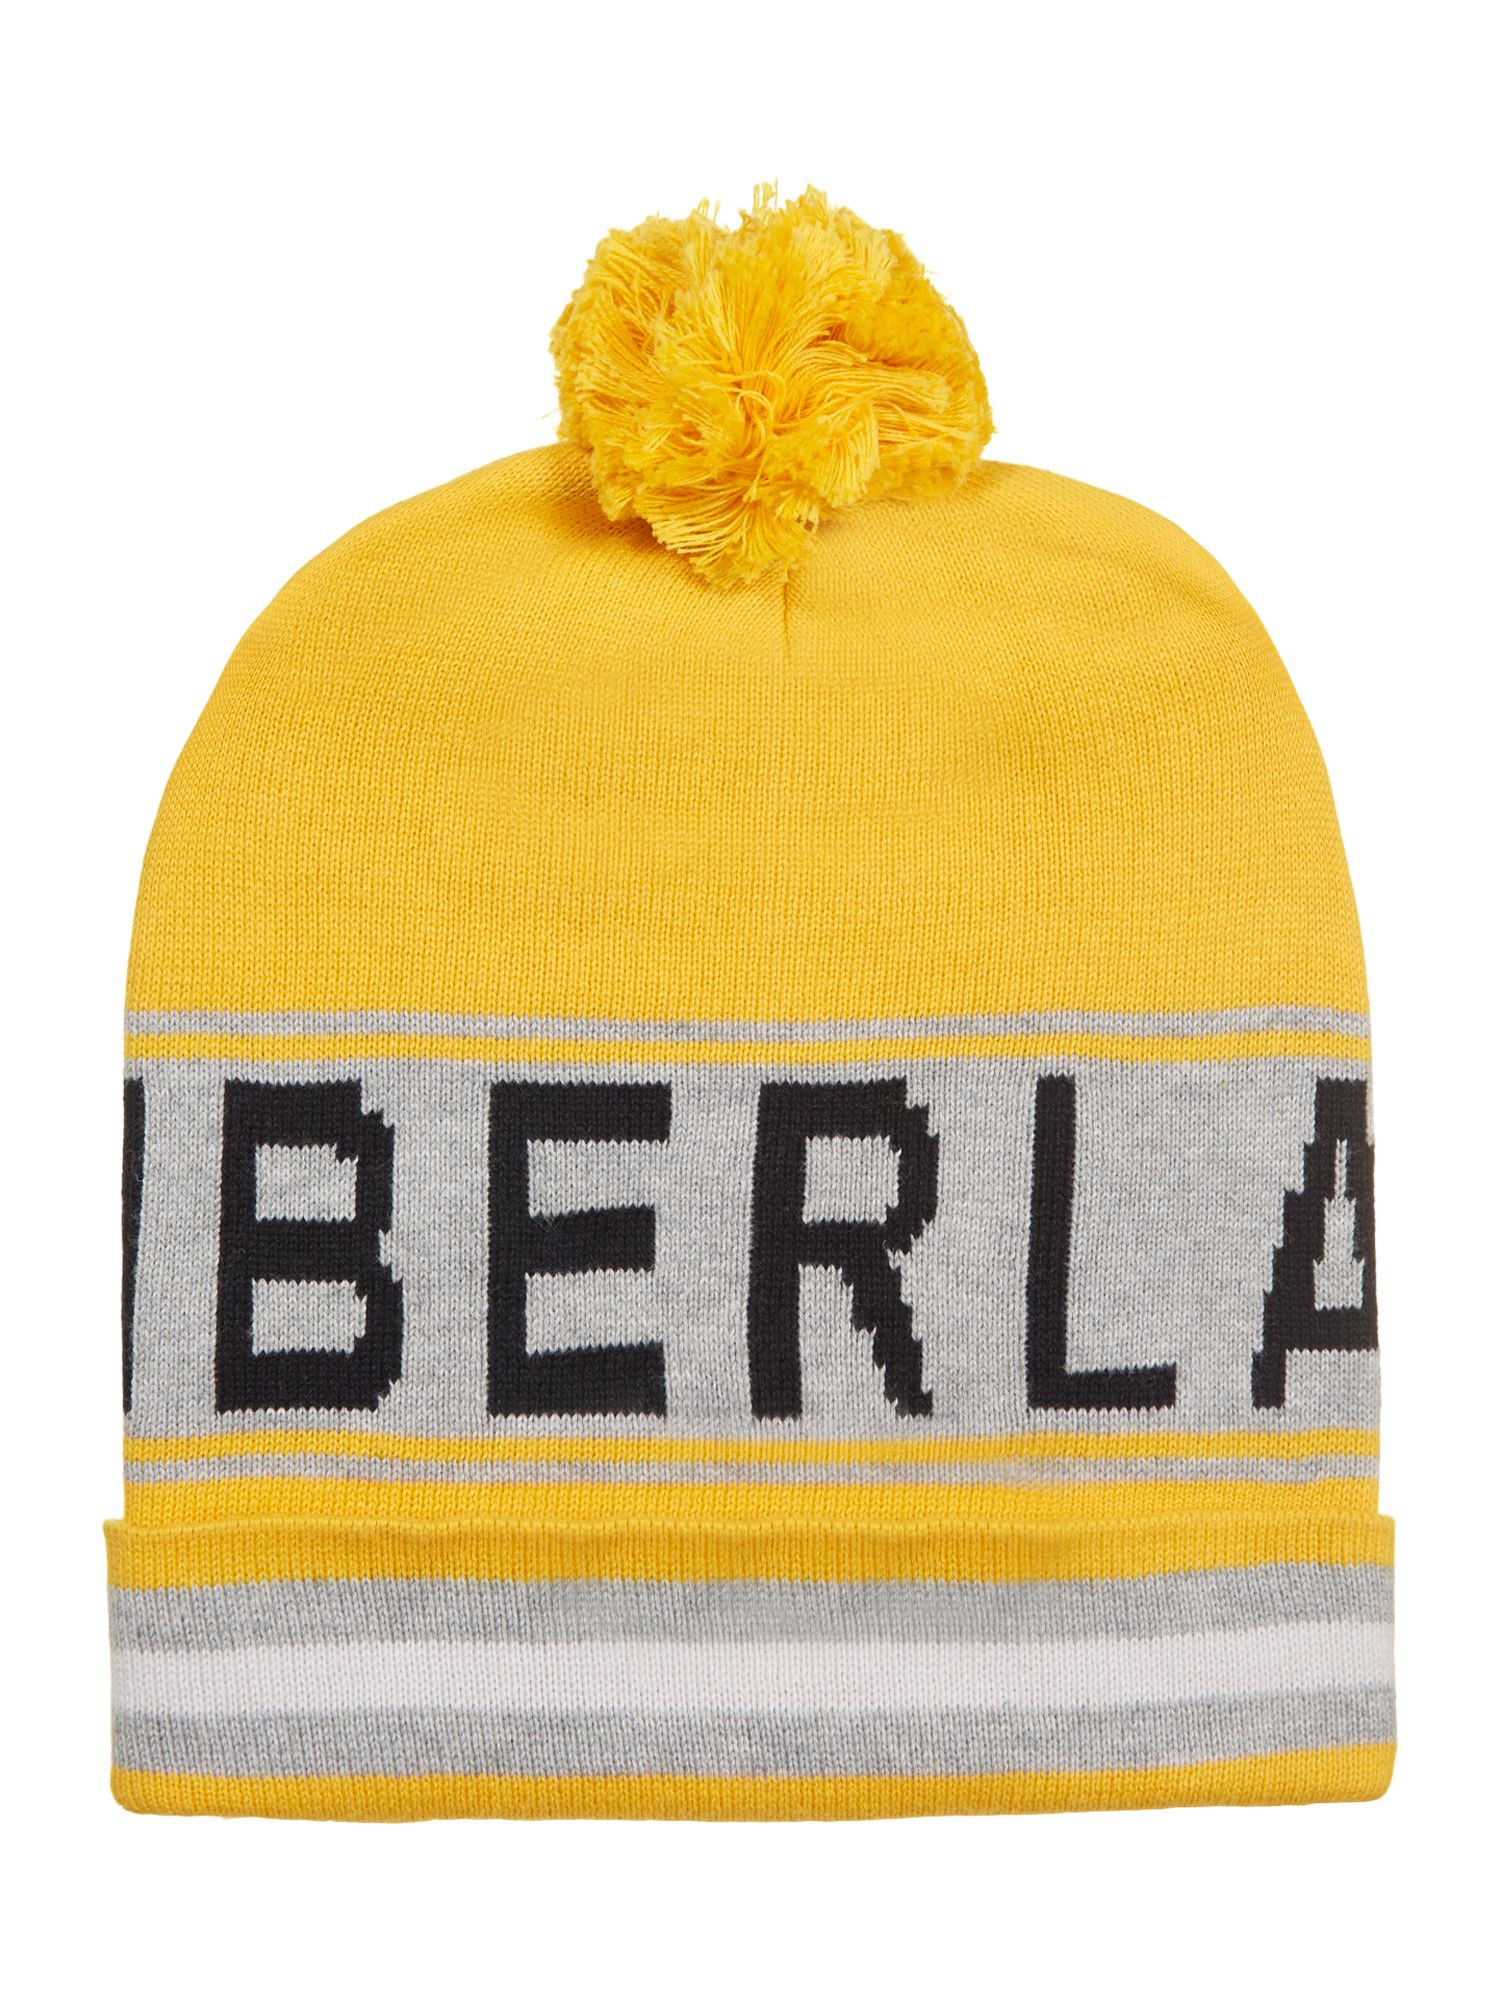 Boys cotton knitted hat